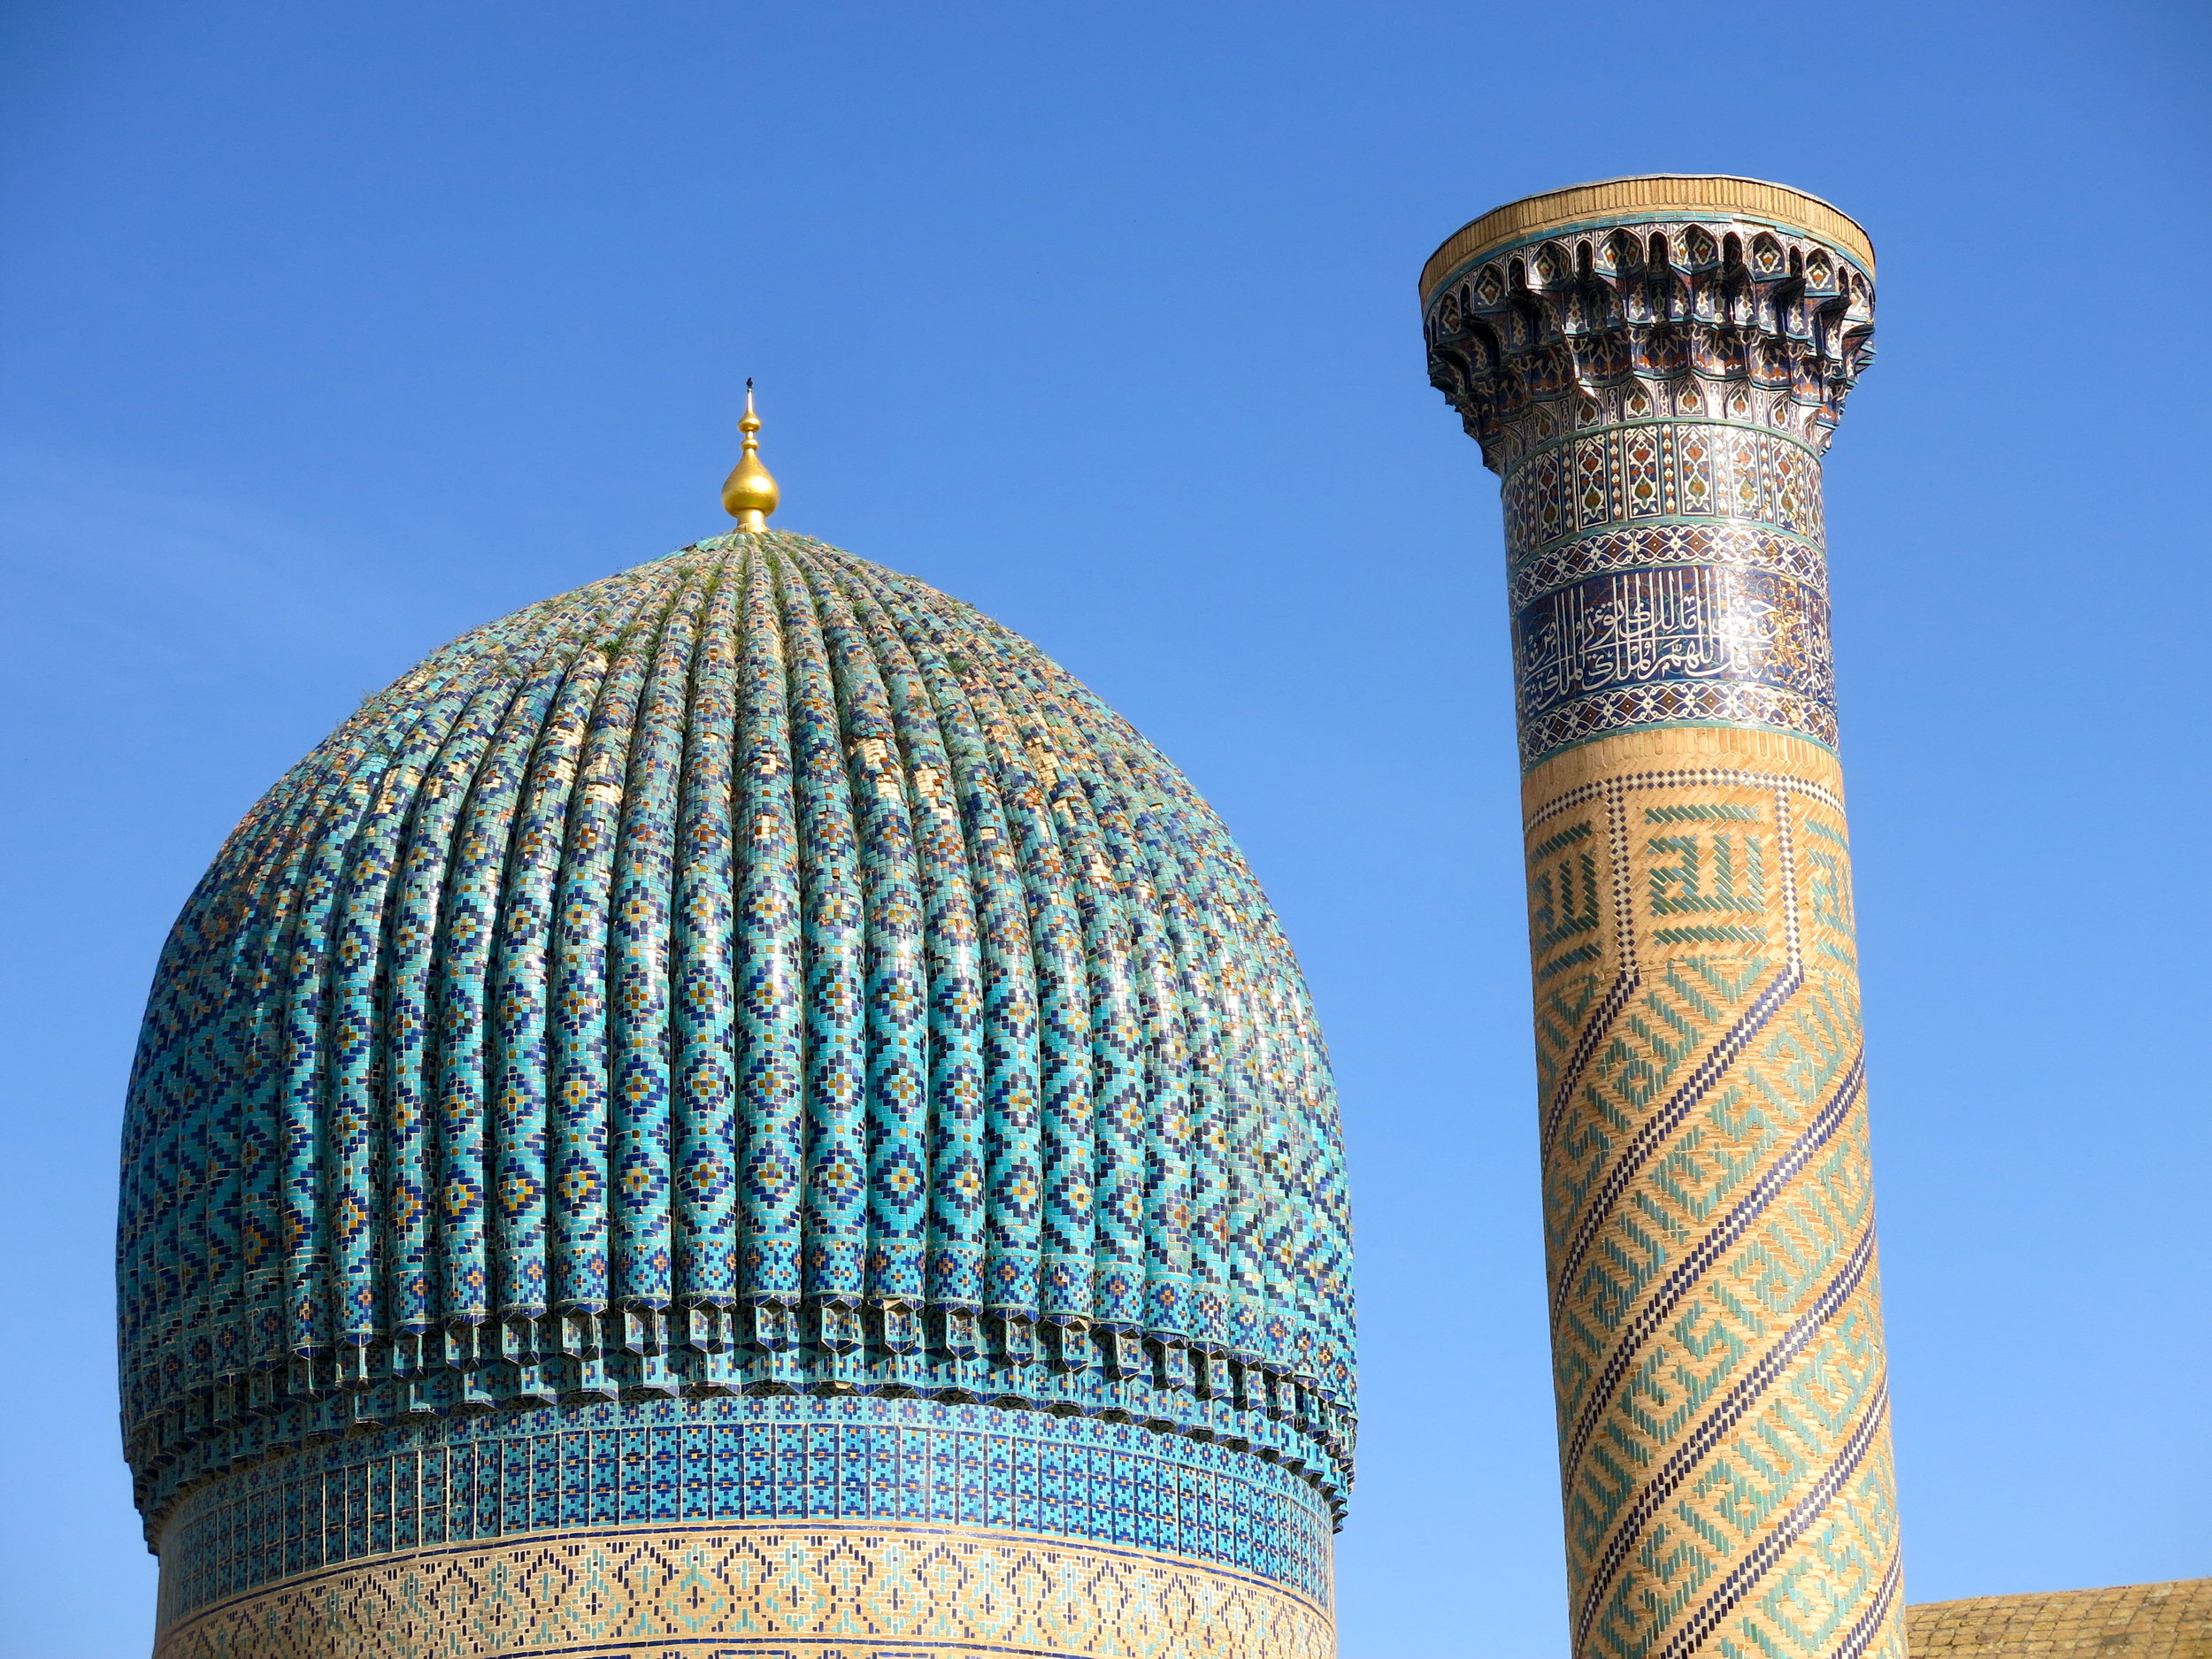 The architecture of the Gut-Emir influenced the Taj Mahal built under the Mughals who were descendents of Timur